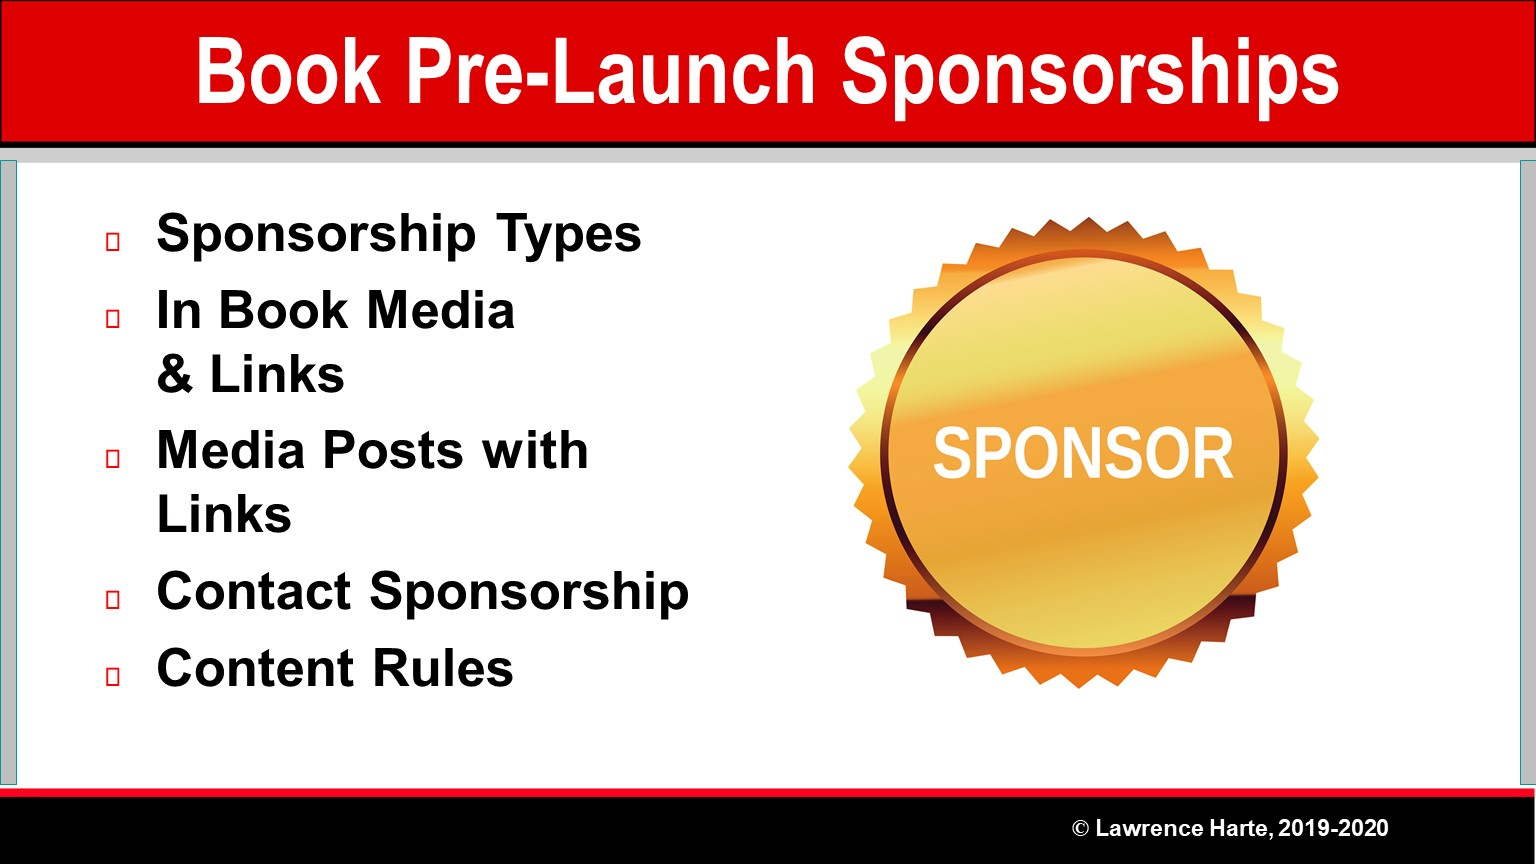 Book Pre-Launch Marketing Sponsorships